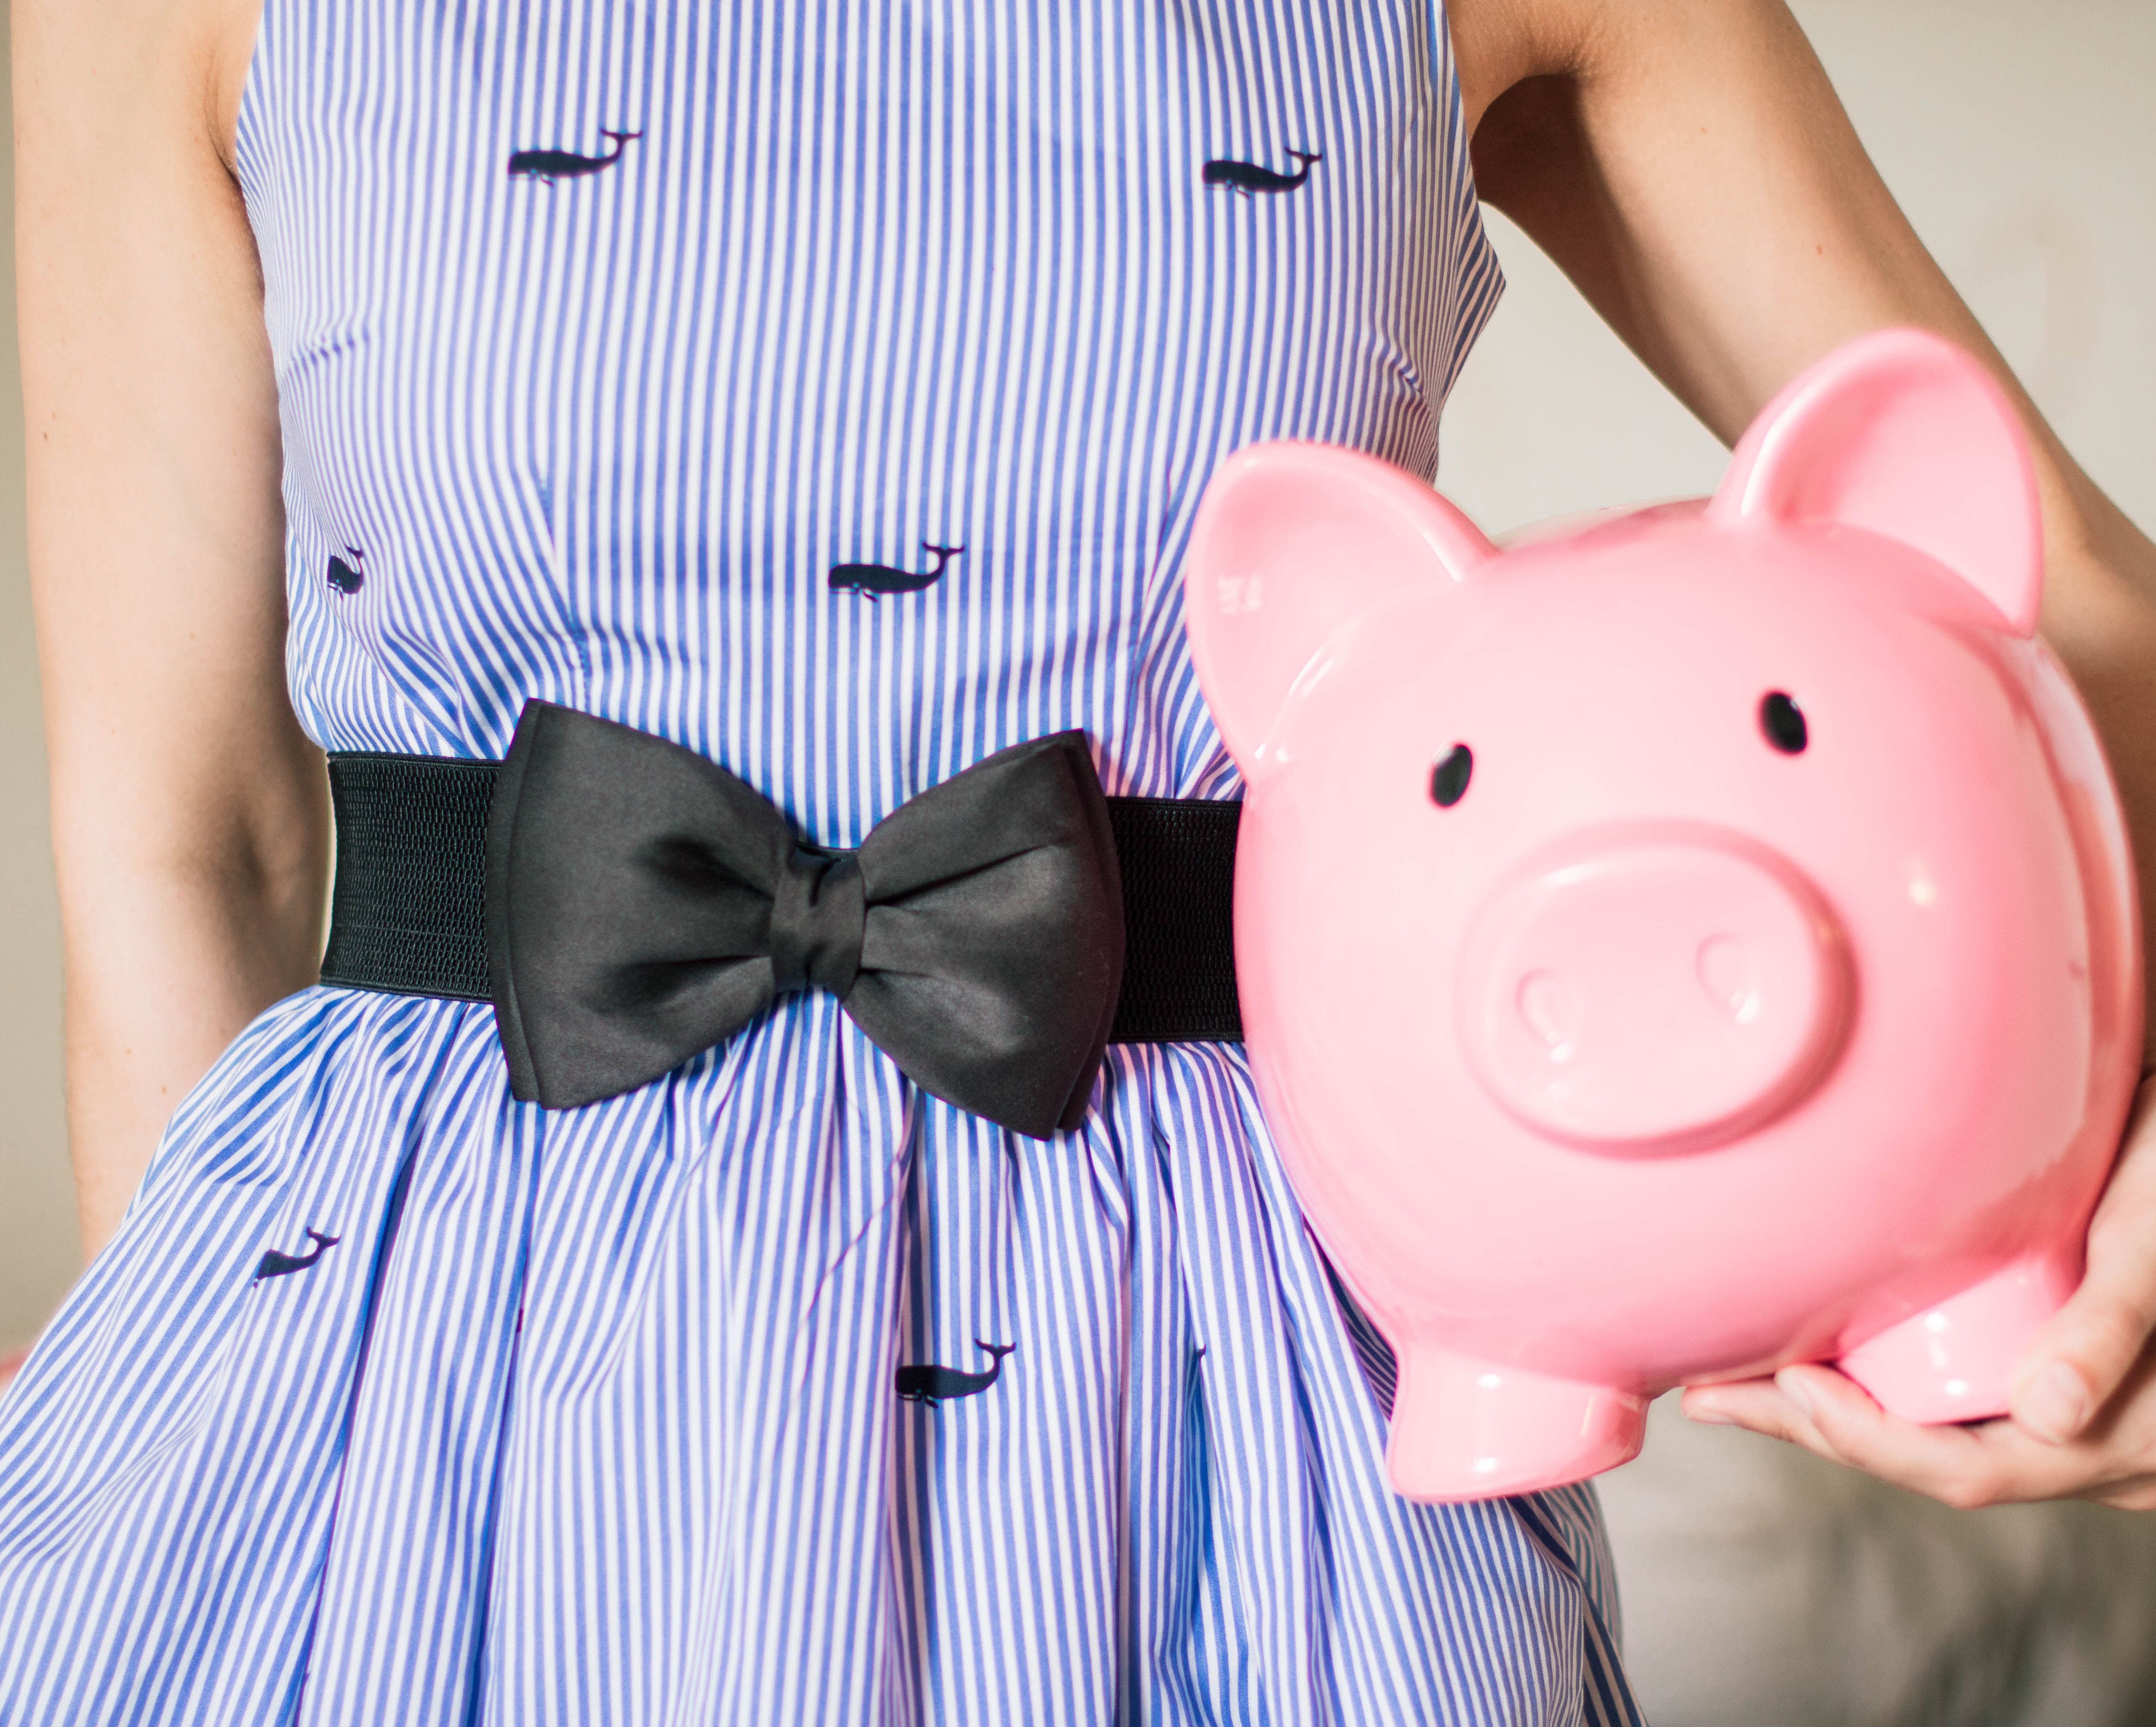 lady-in-stripped-dress-with-piggy-bank-701801